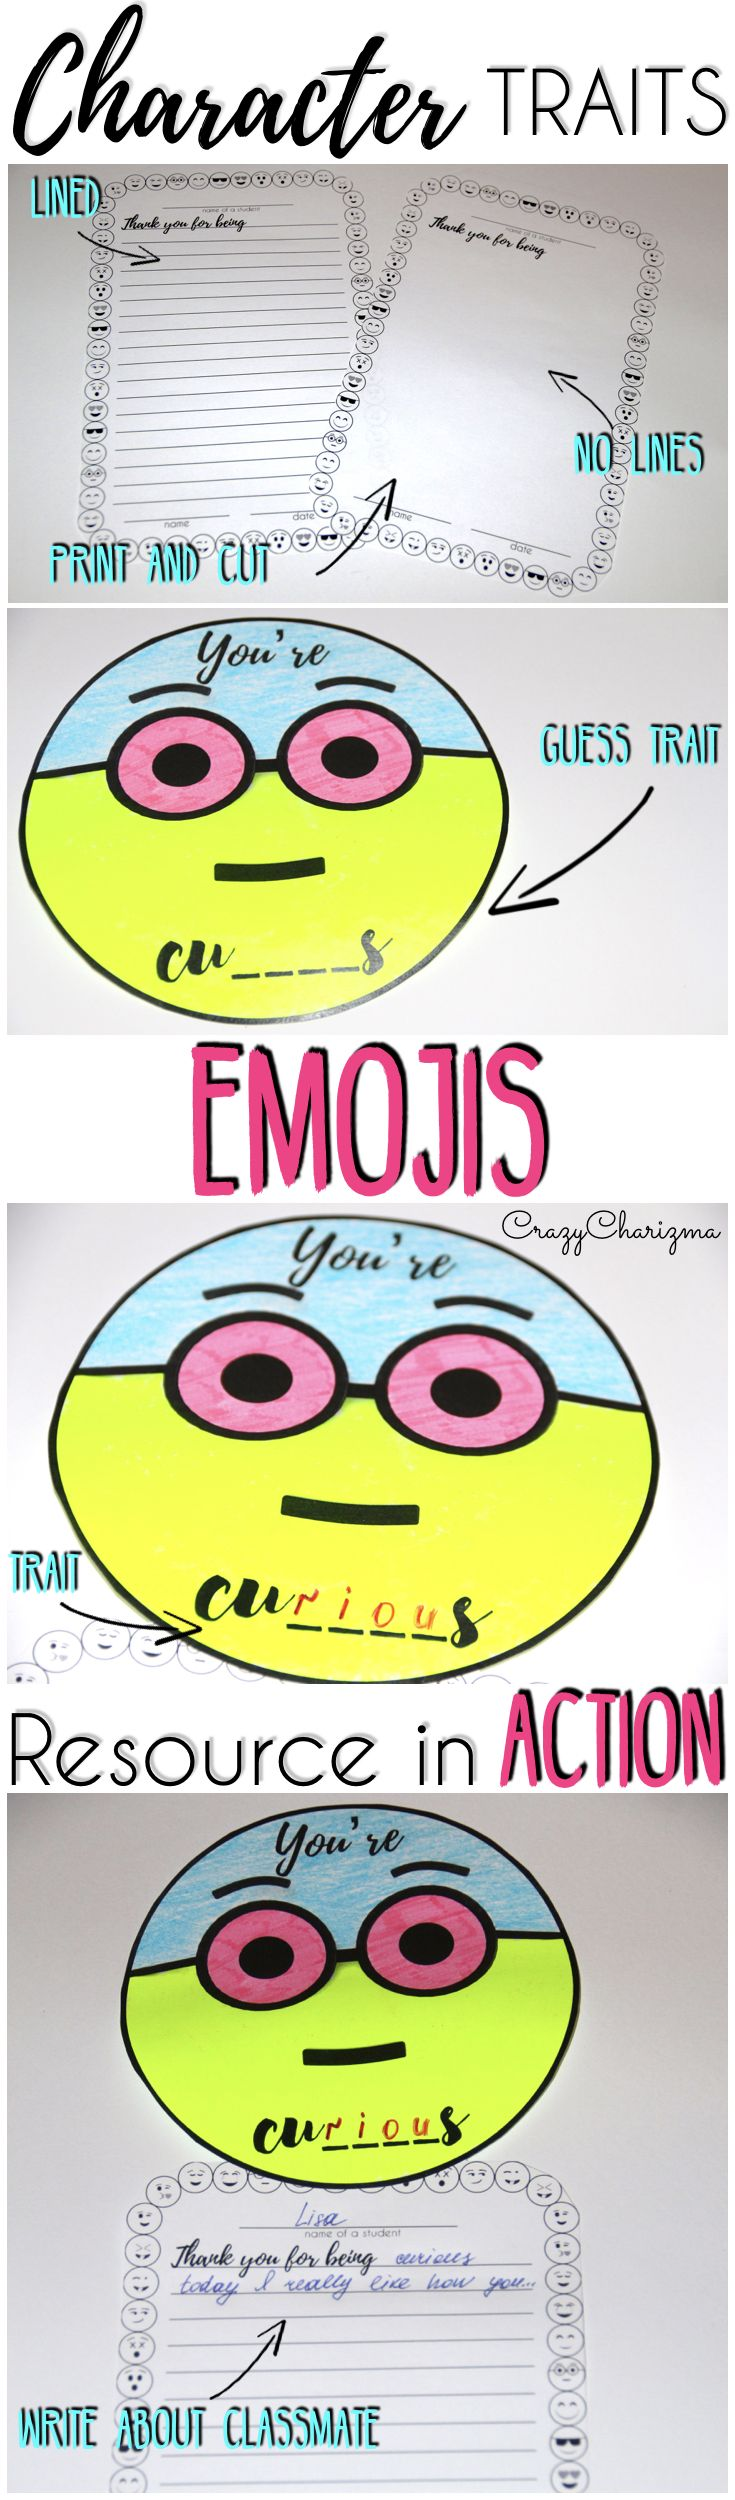 Use this Emojis packet to practice Character Traits (only positive) in Elementary school. The packet can also be used to build kindness (random acts of kindness) or build rapport in the classroom. Perfect for ✔ Thanksgiving; ✔ End of the year / term; ✔ New Year or any time you feel like.| CrazyCharizma